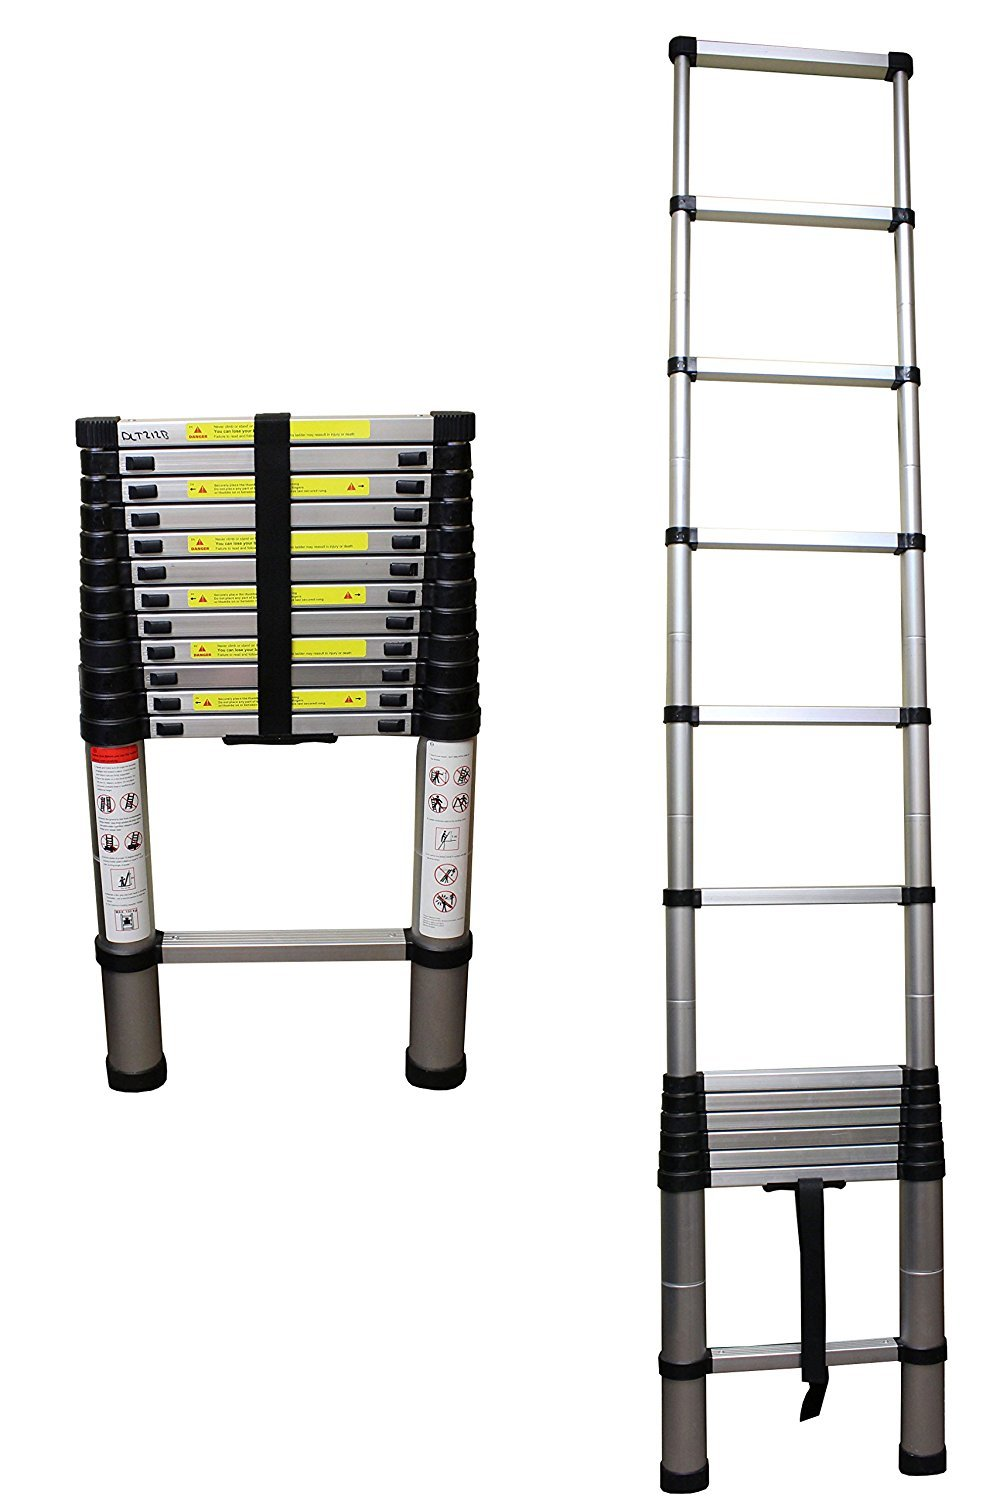 12.5' Ft Aluminum Telescoping Portable Ladder with Safety Locking Steps ANSI EN131